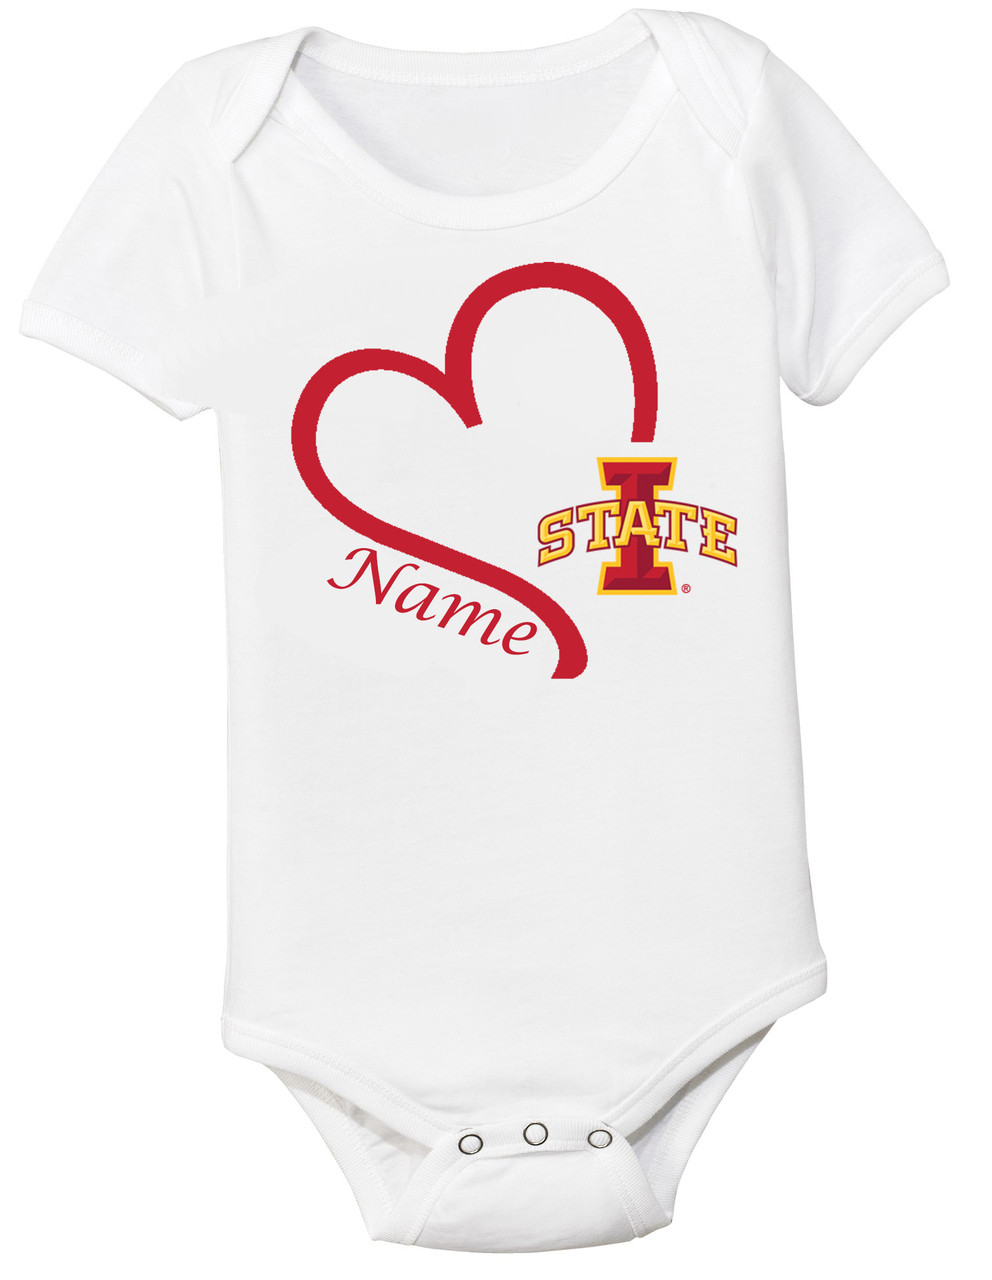 Future Tailgater Iowa State Cyclones Baby//Toddler T-Shirt 6 months